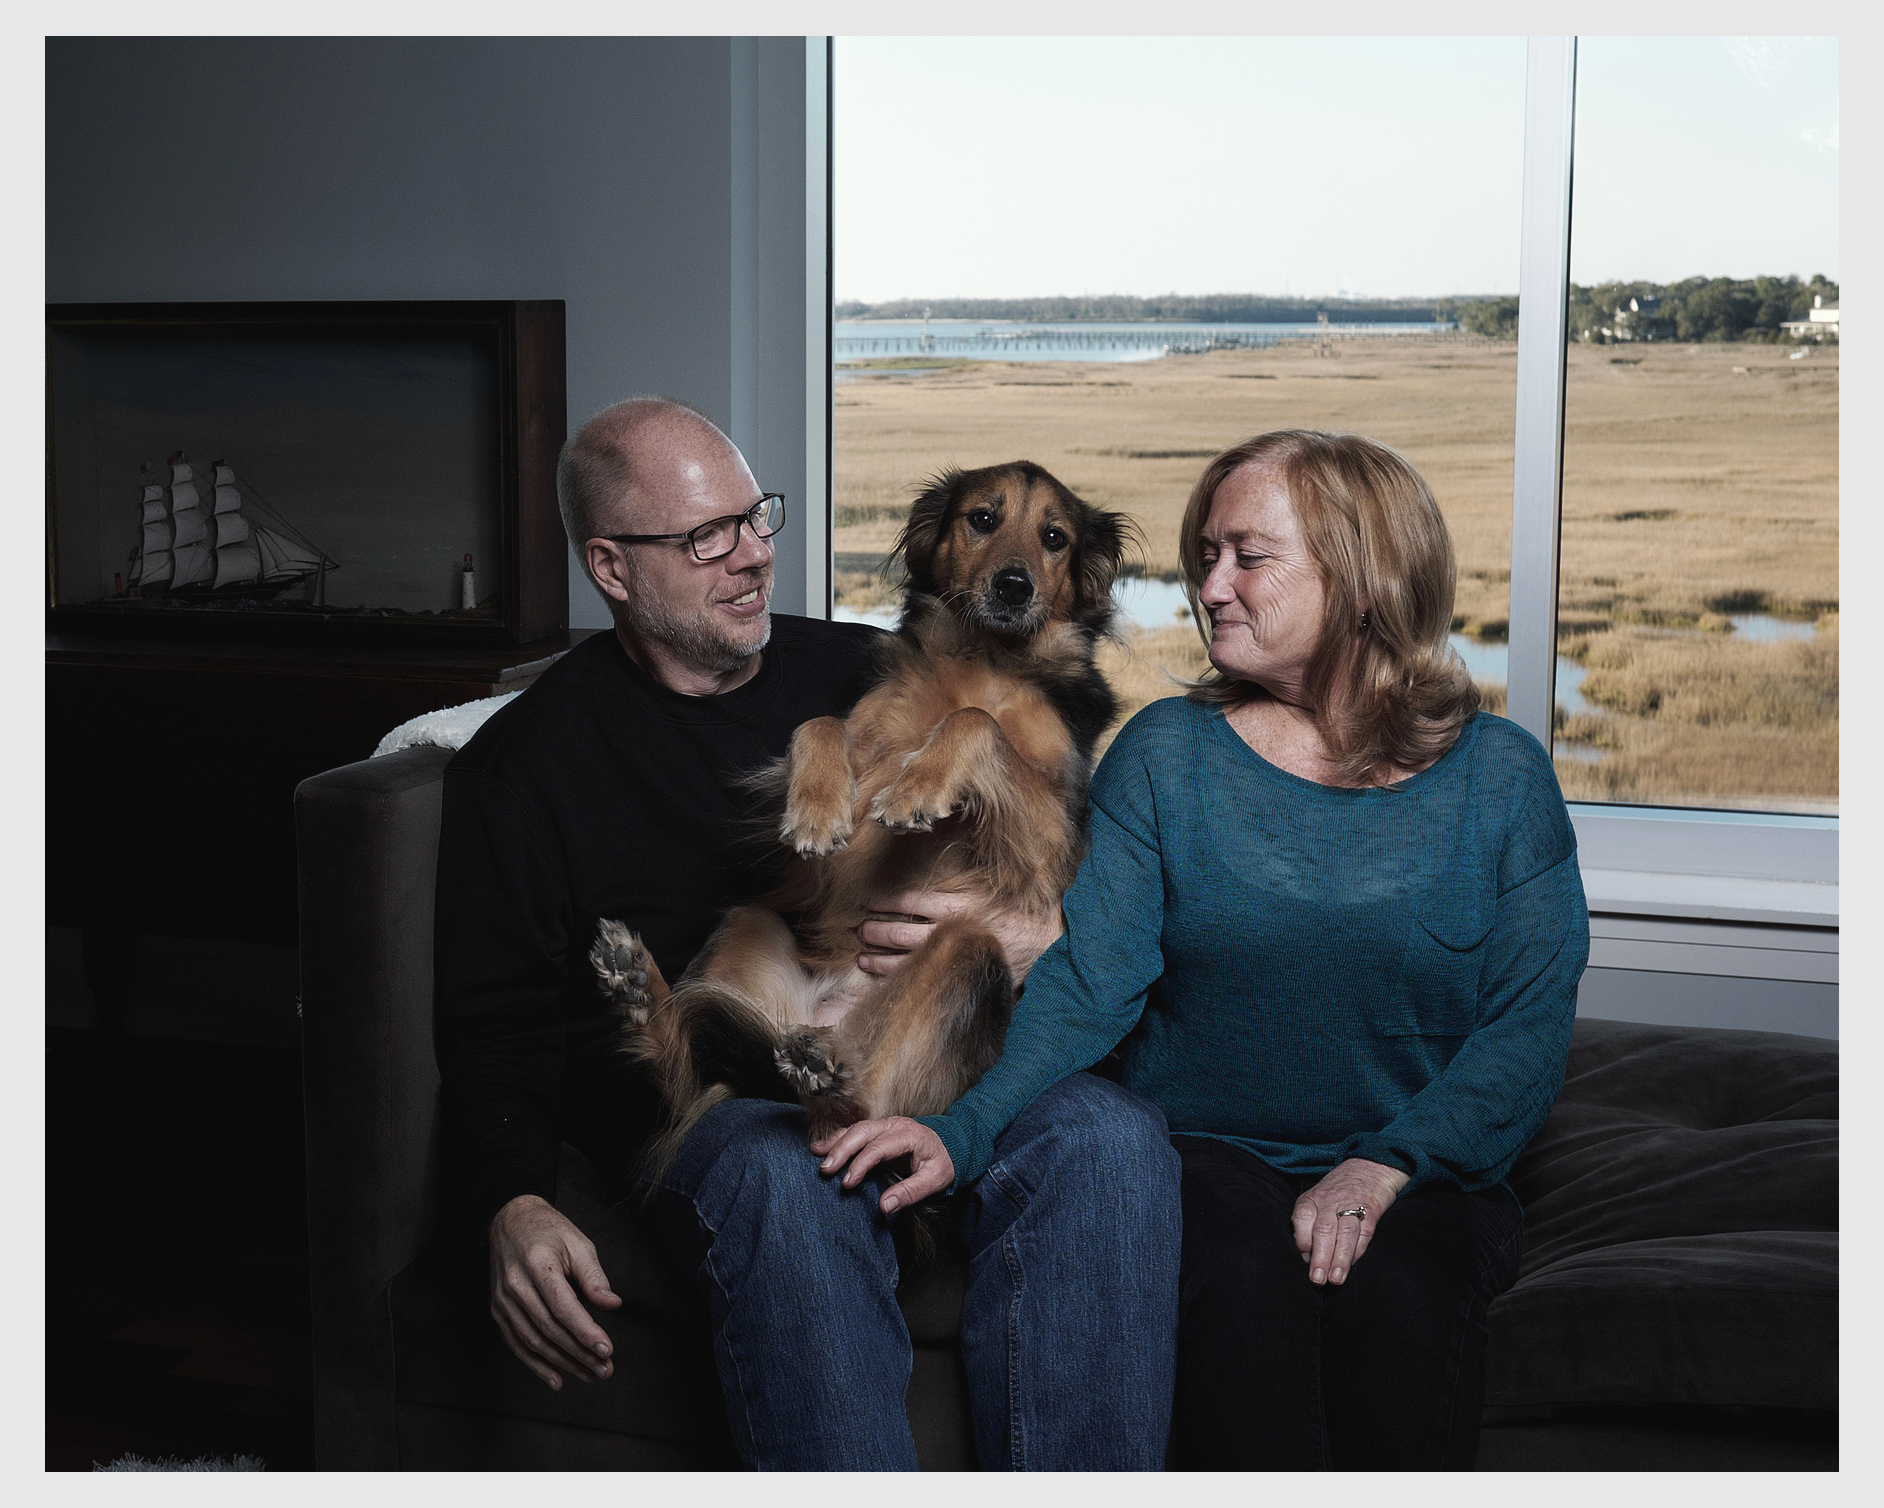 Chris and Kimarie Nickels, shown with their rescue dog Ripley, at their home in Mount Pleasant, South Carolina.